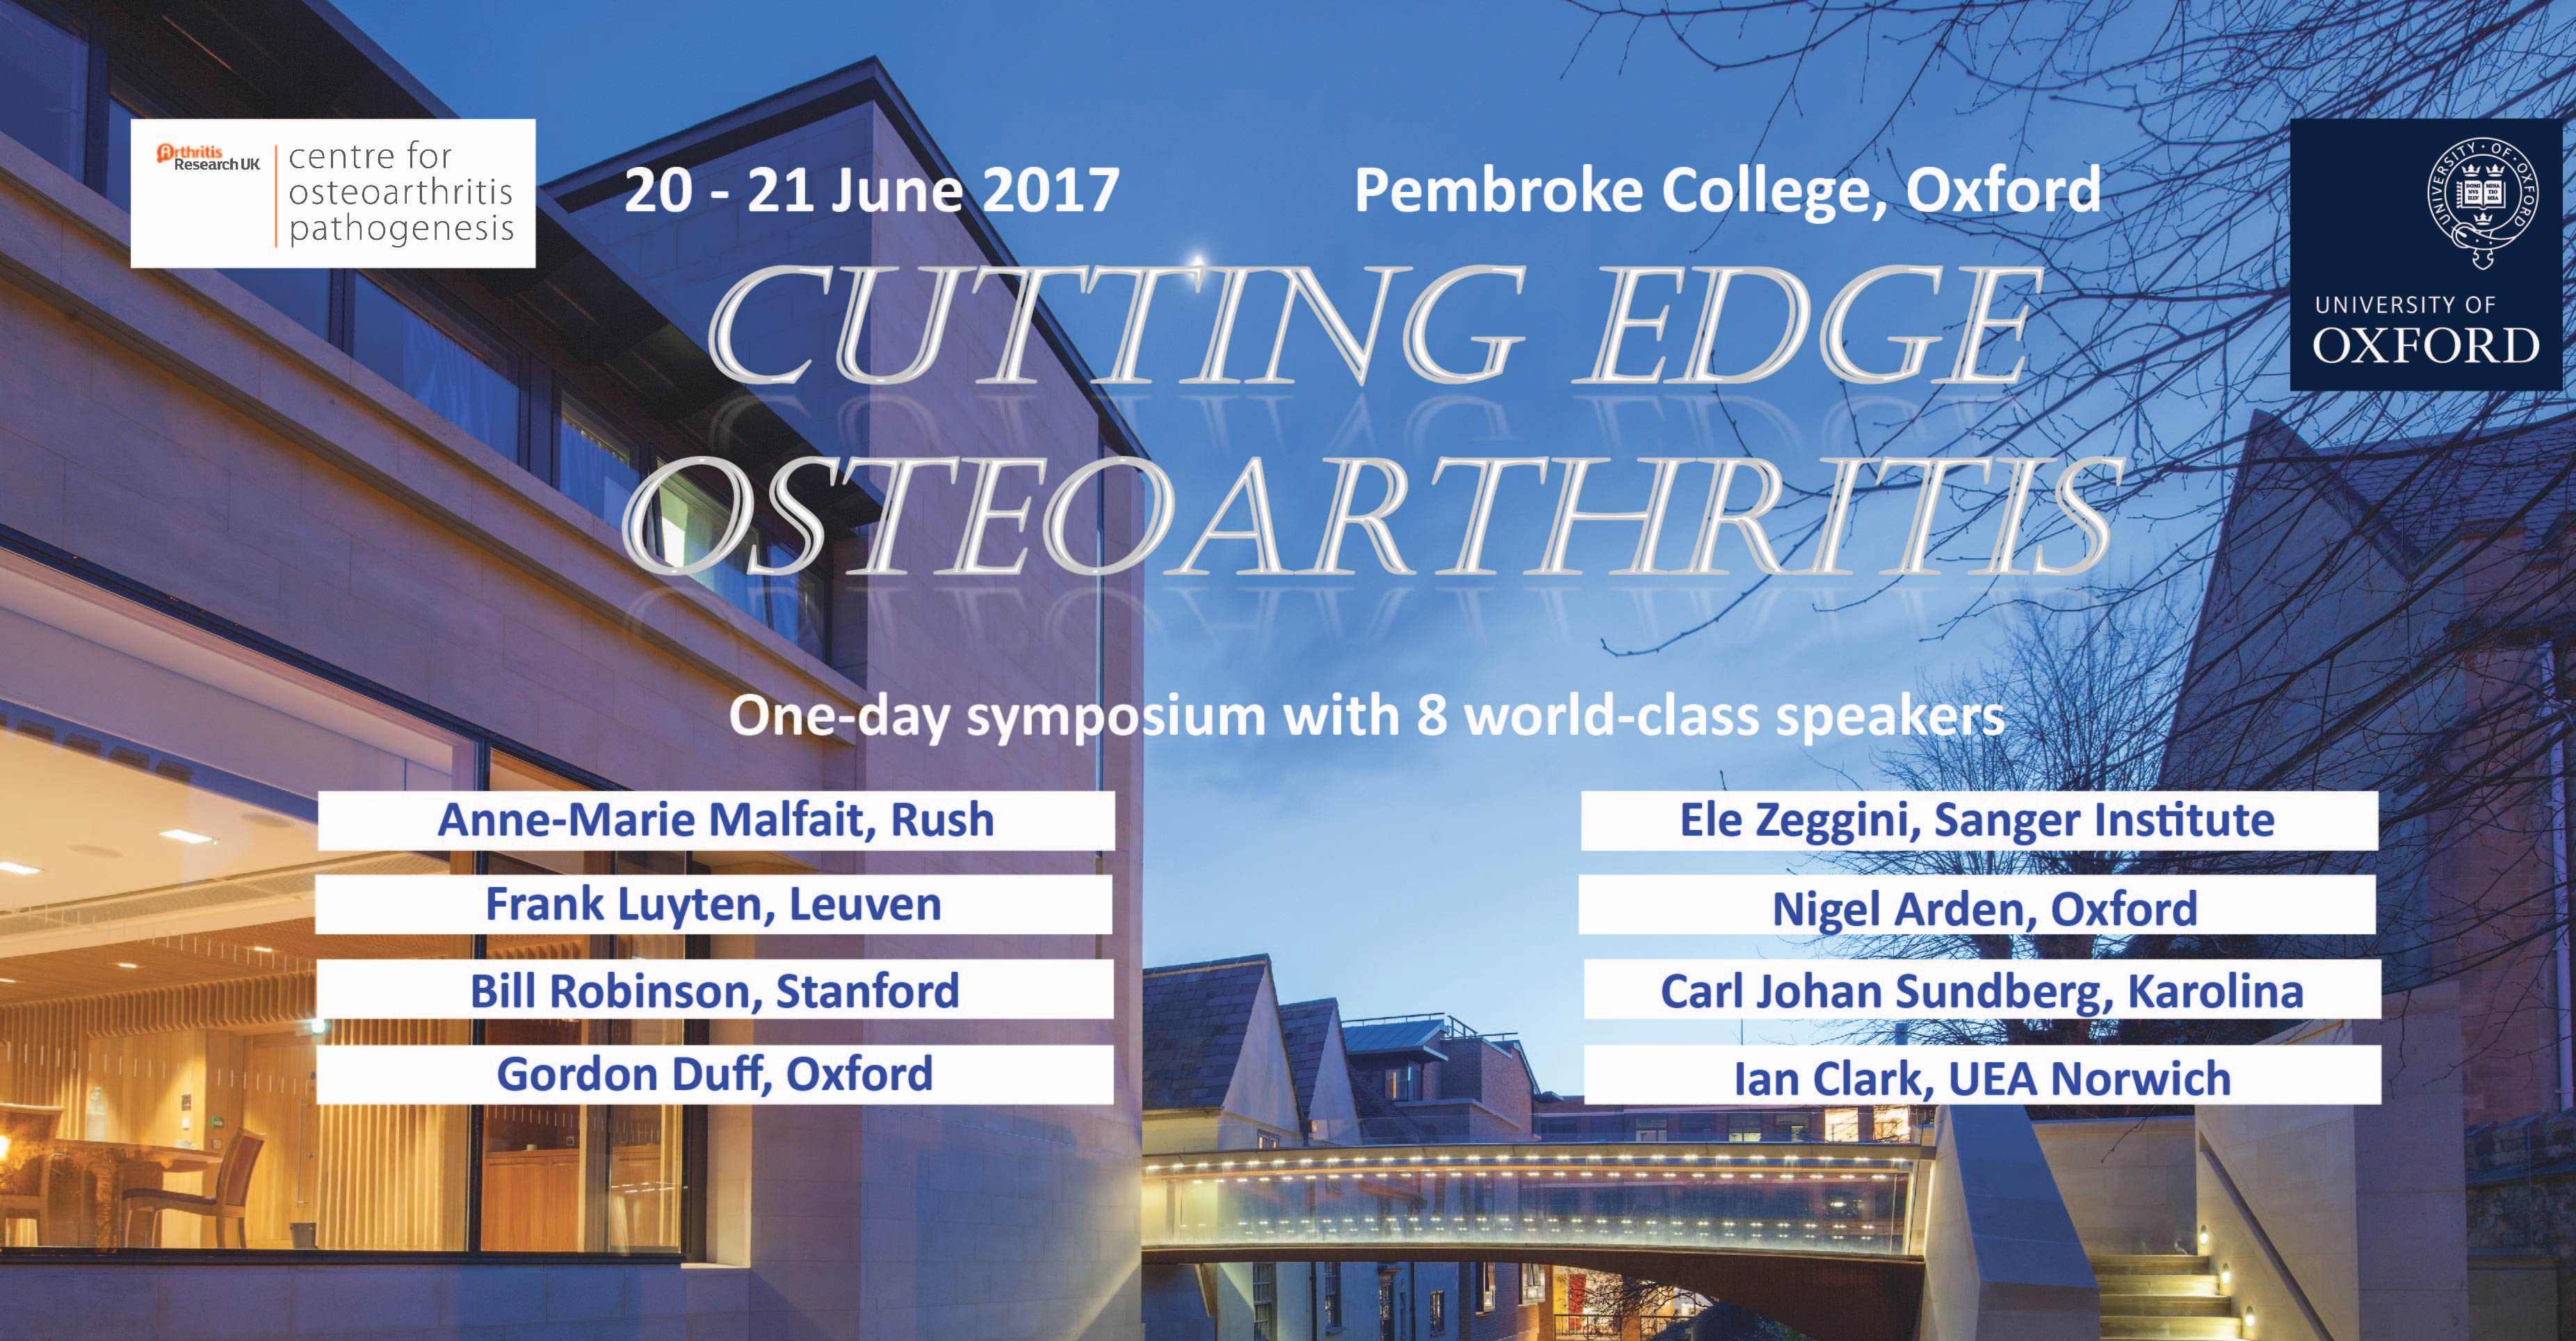 Register for the biennial Cutting Edge Osteoarthritis symposium organised by the Kennedy Institute